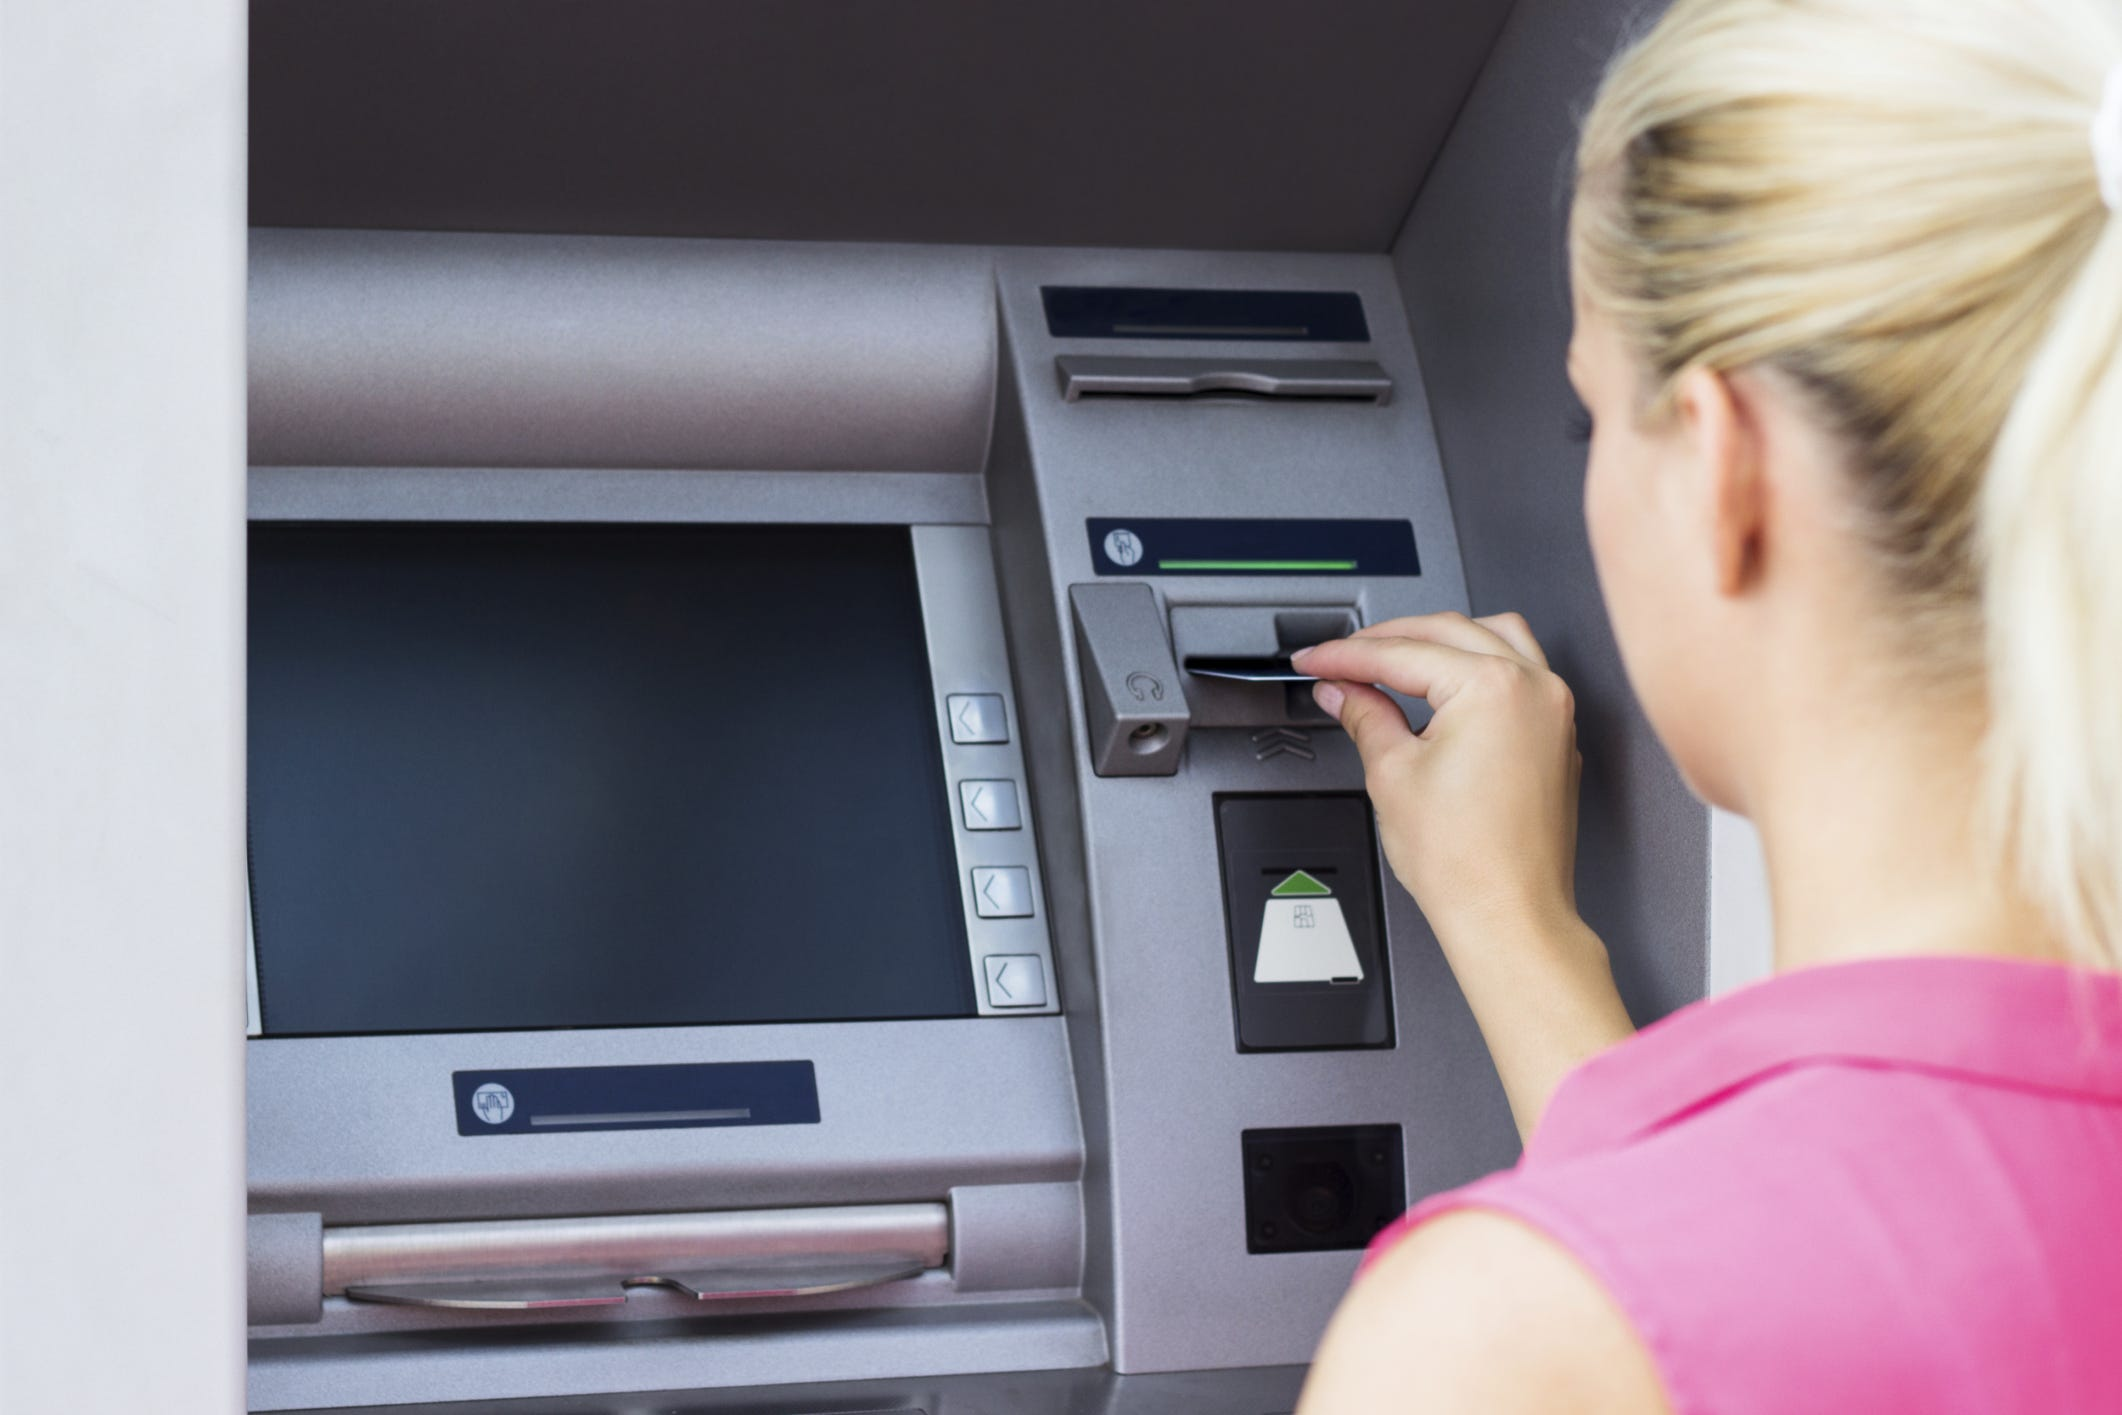 ATM fees reach a record average of $4.72 per withdrawal, with more coming